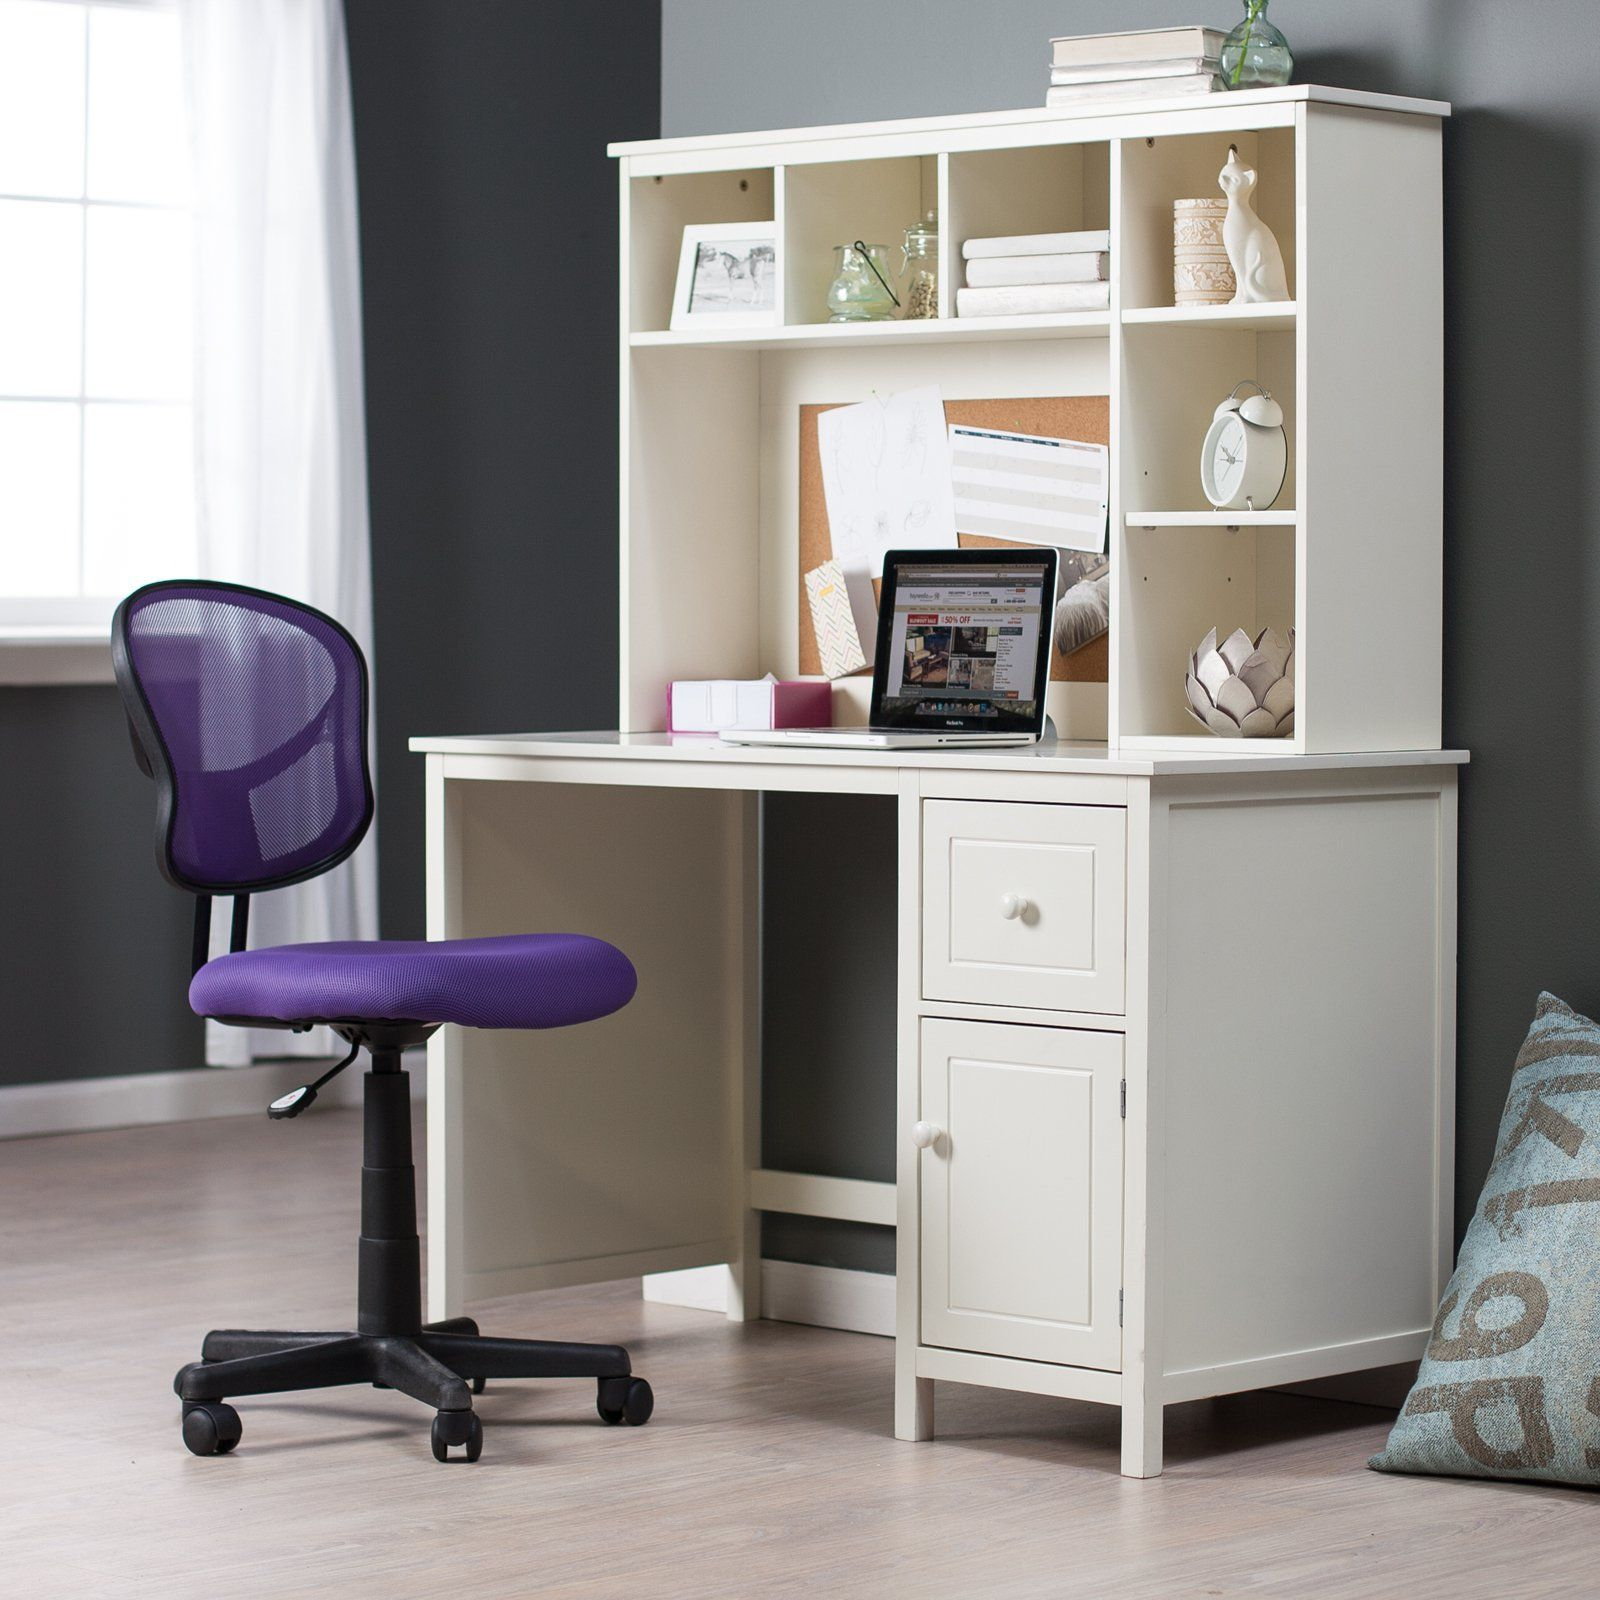 Superb 30+ Fabulous Modern Desk Ideas For Functional And Enjoyable Office   Simple  Studios